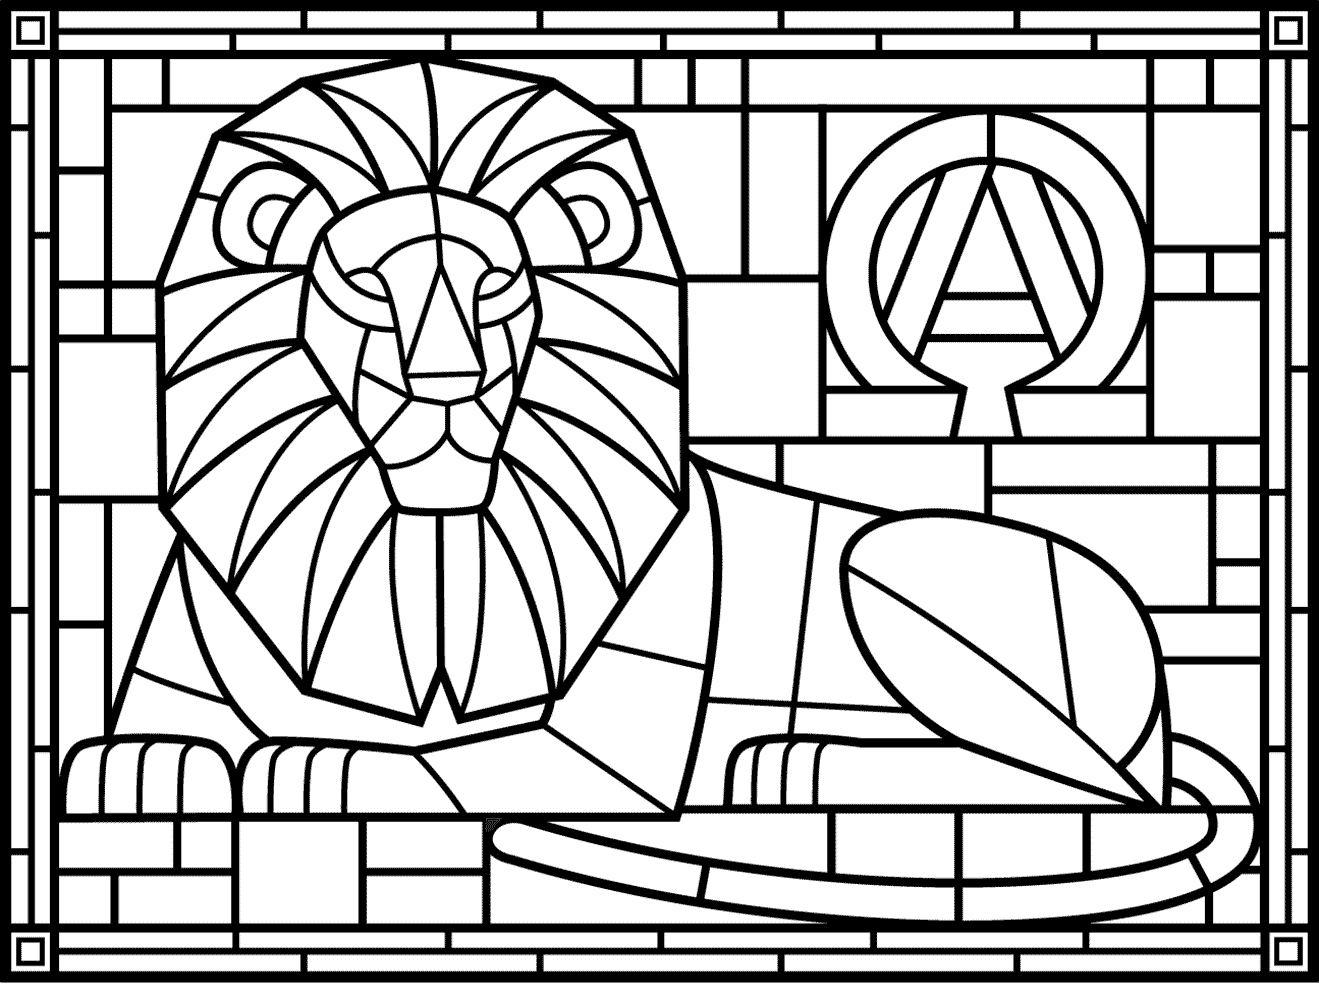 stained glass coloring for adults best kids lion winter remove crayon marks silly string coloring pages Stained Glass Coloring Page